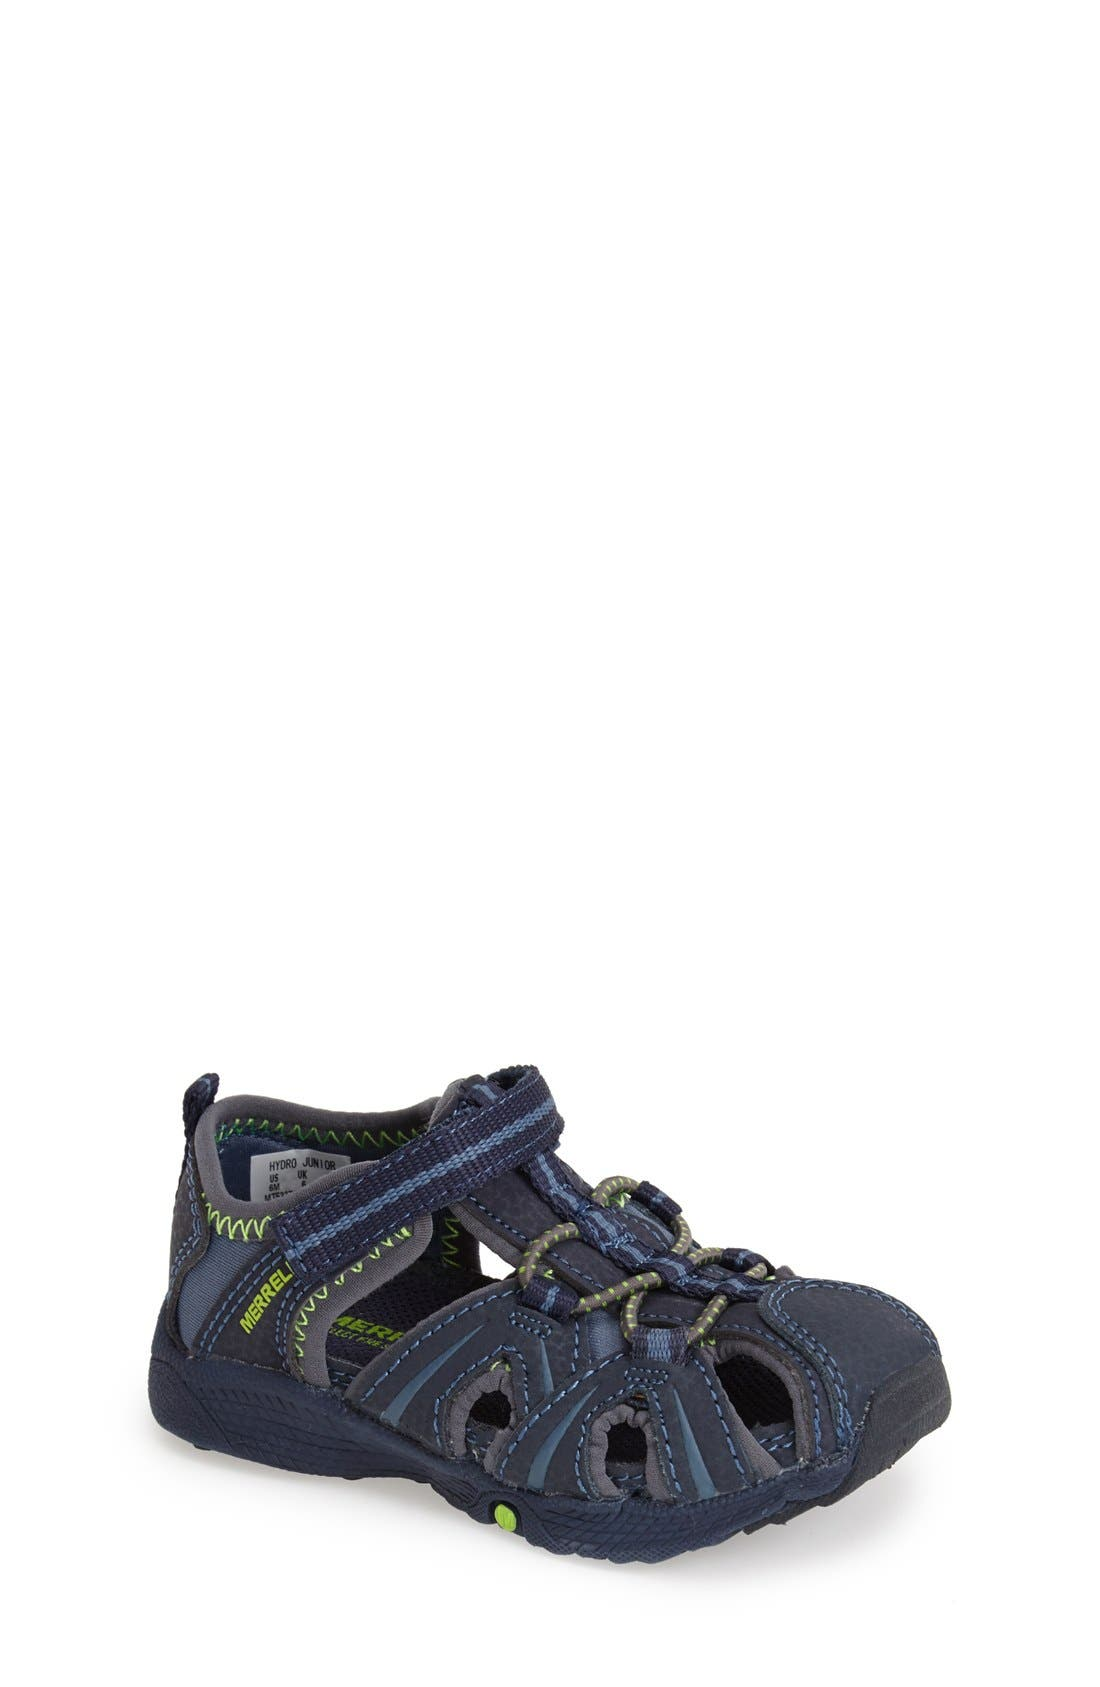 e515a0076cdf Toddler Merrell Shoes (Sizes 7.5-12)